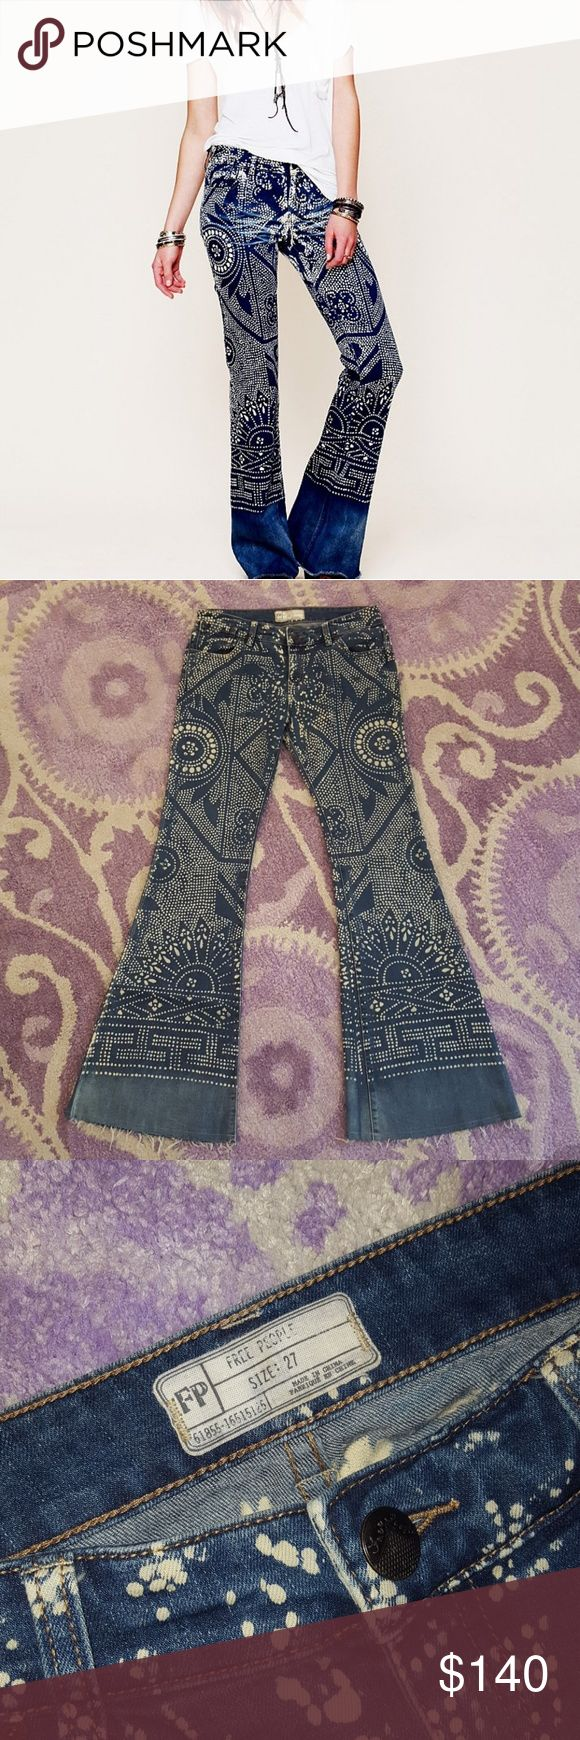 Free People Bali flare jeans Like new authentic Bali flare jeans, gentle stretch low rise denim. Only worn once for a couple hours, never been thru washer or dryer, smoke free home. I truly love these gorgeous, rare jeans but I never wear them. (First pic is stock photo)  Price negotiable thru offer button only Free People Jeans Flare & Wide Leg